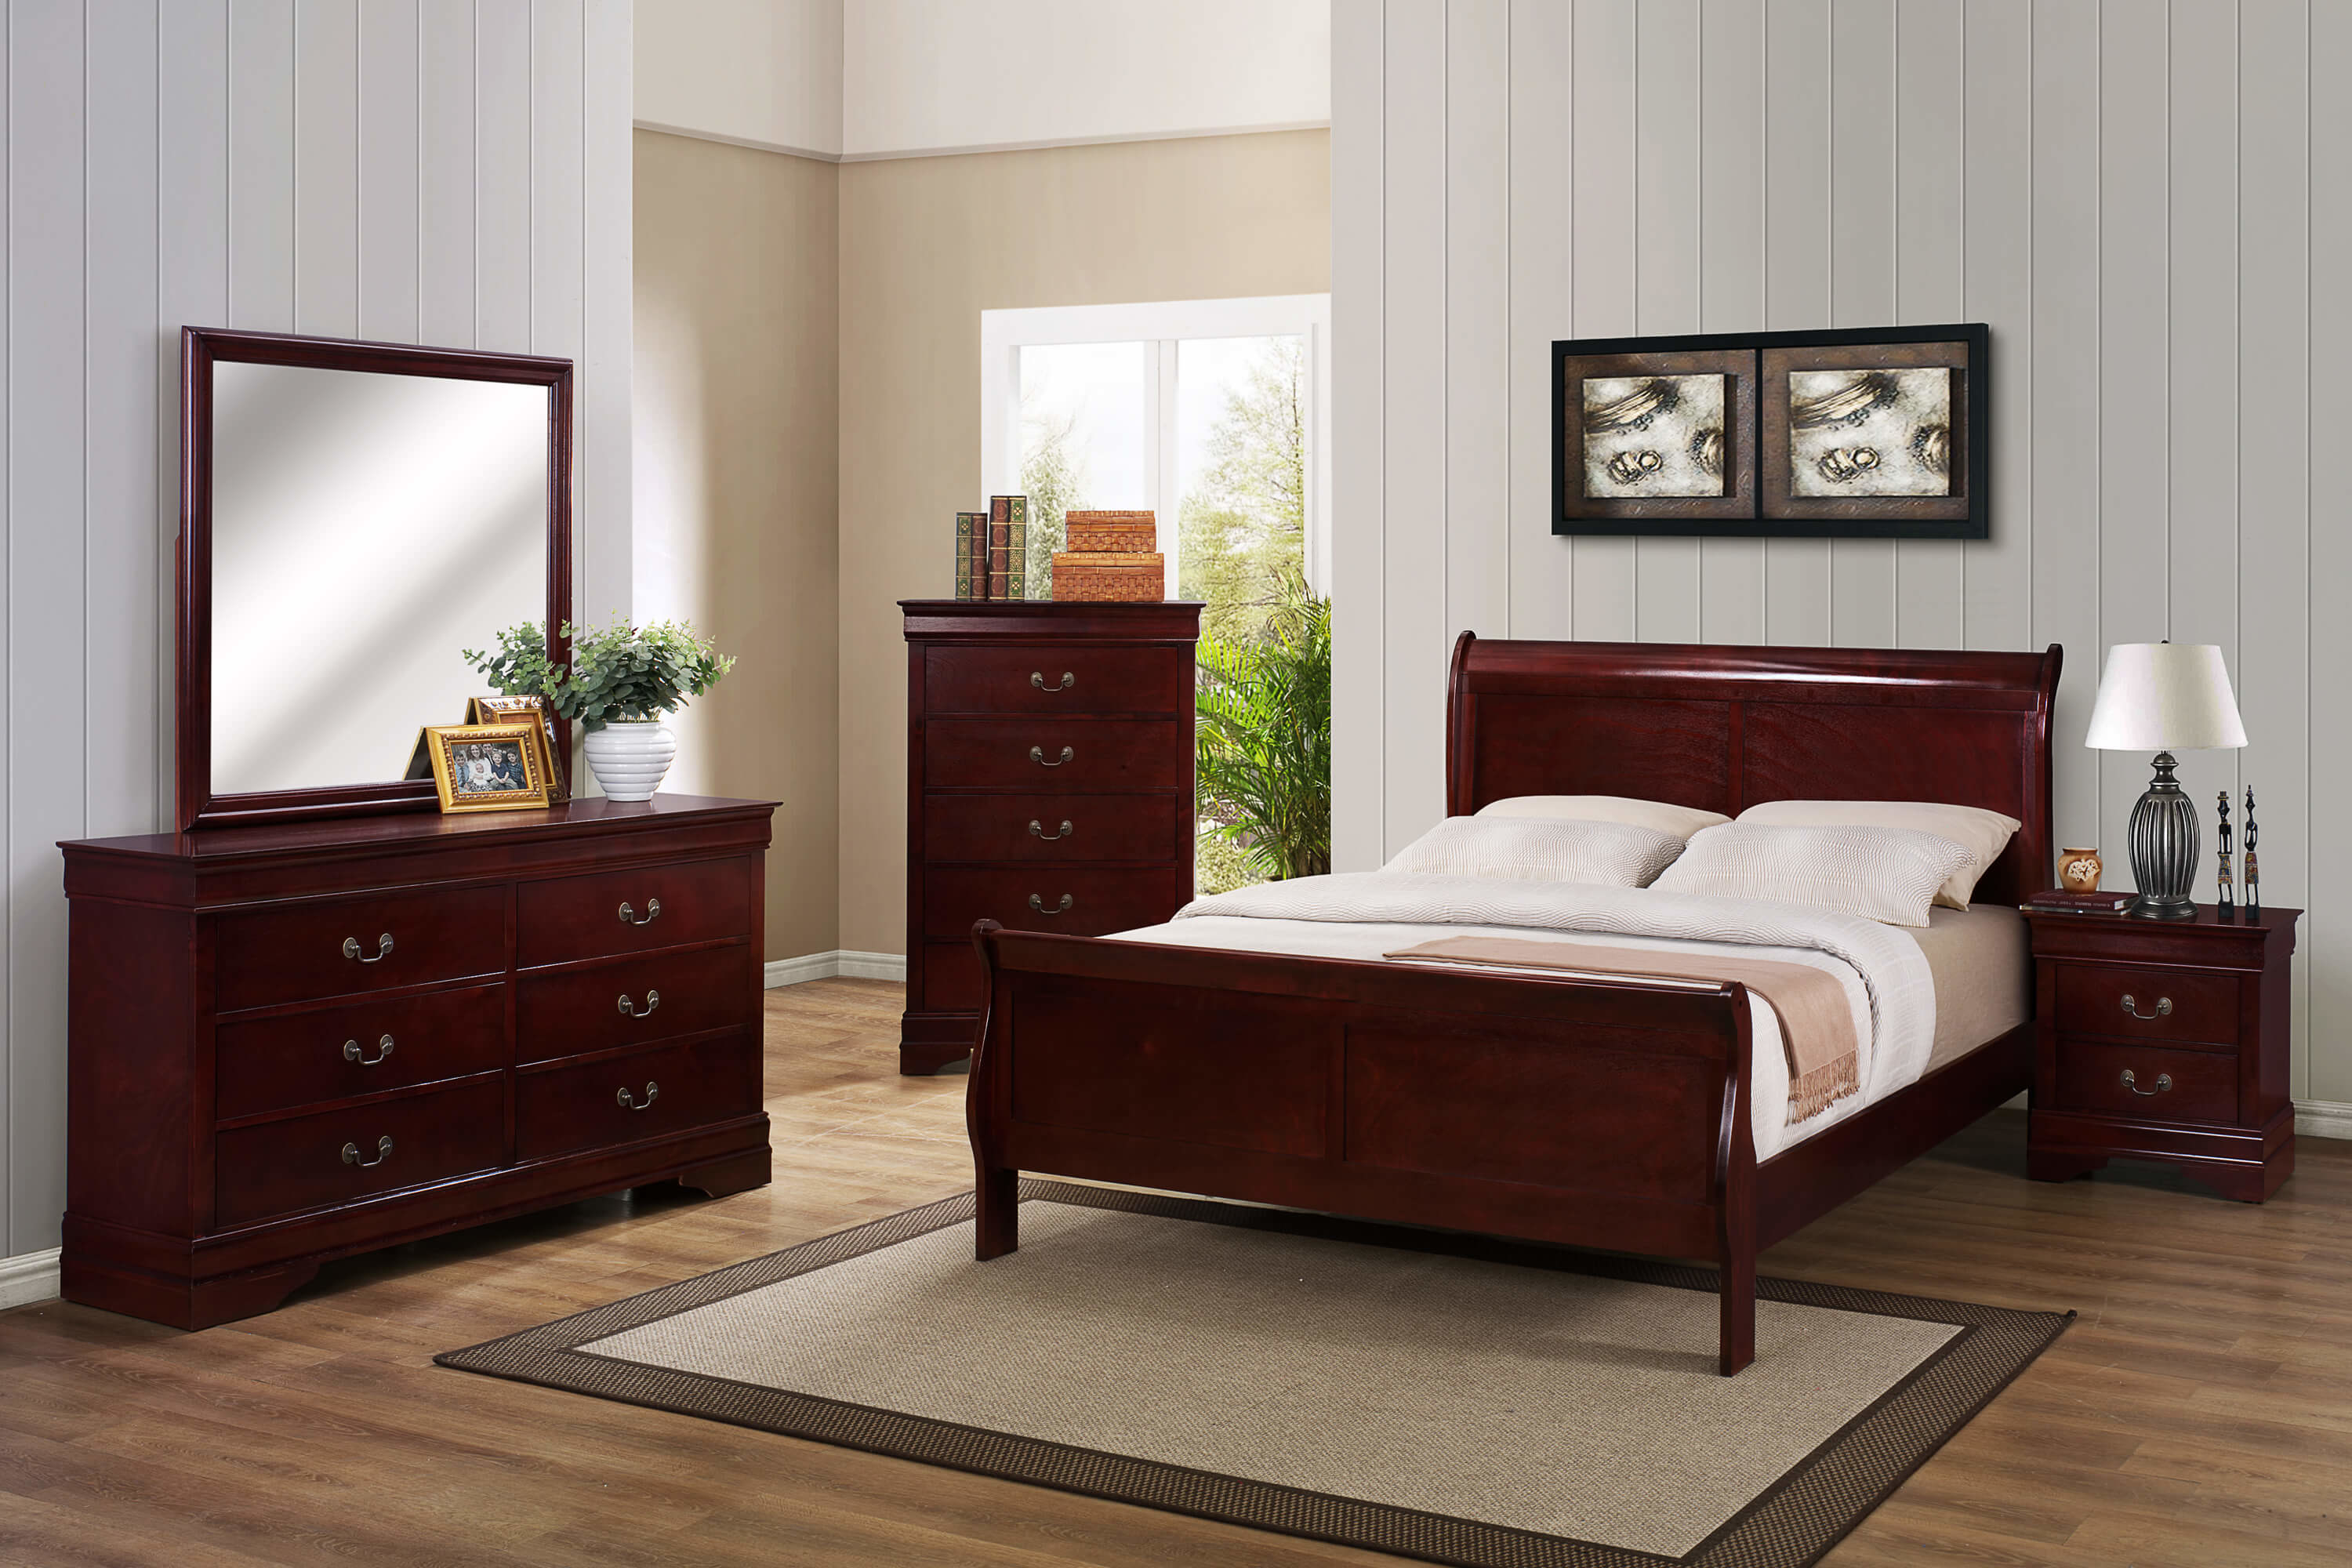 Furniture Stores Kent | Cheap Furniture Tacoma | Lynnwood WAFurniture Stores Kent | Cheap Furniture Tacoma | Lynnwood WAbedroom furniture sets Louis